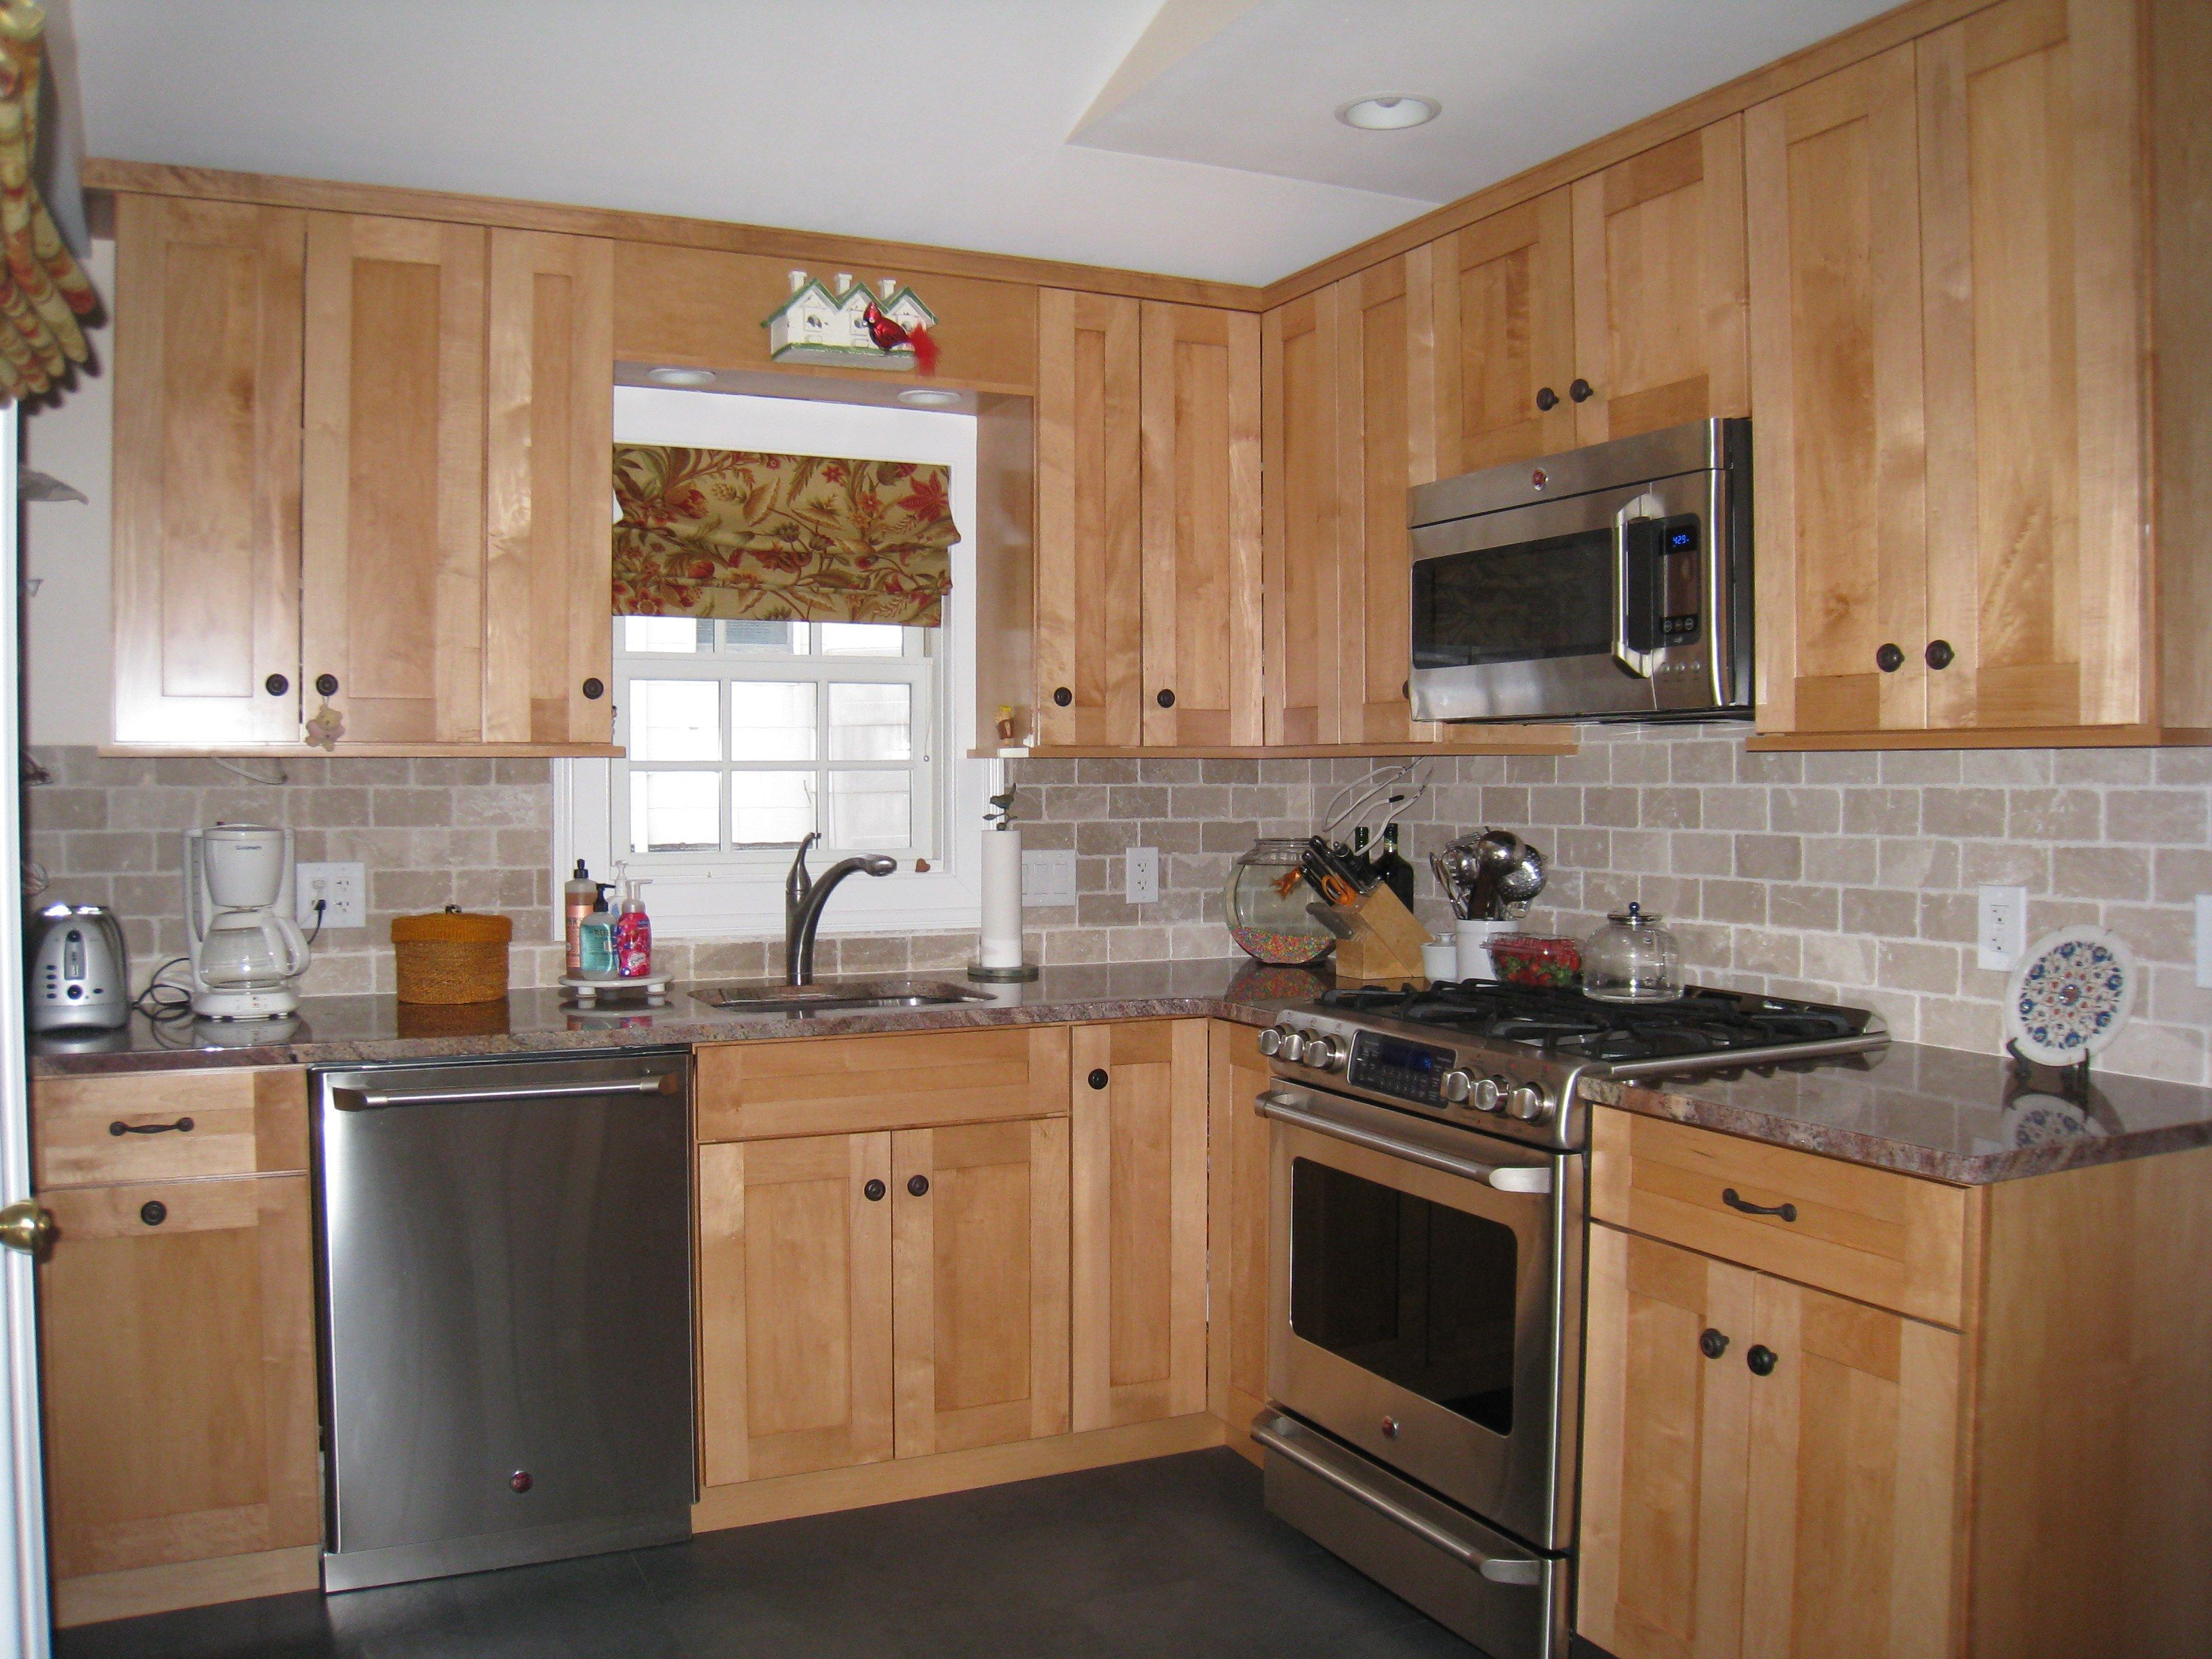 Used Oak Kitchen Cabinets Backsplash For Kitchen With Honey Oak Cabinets Google